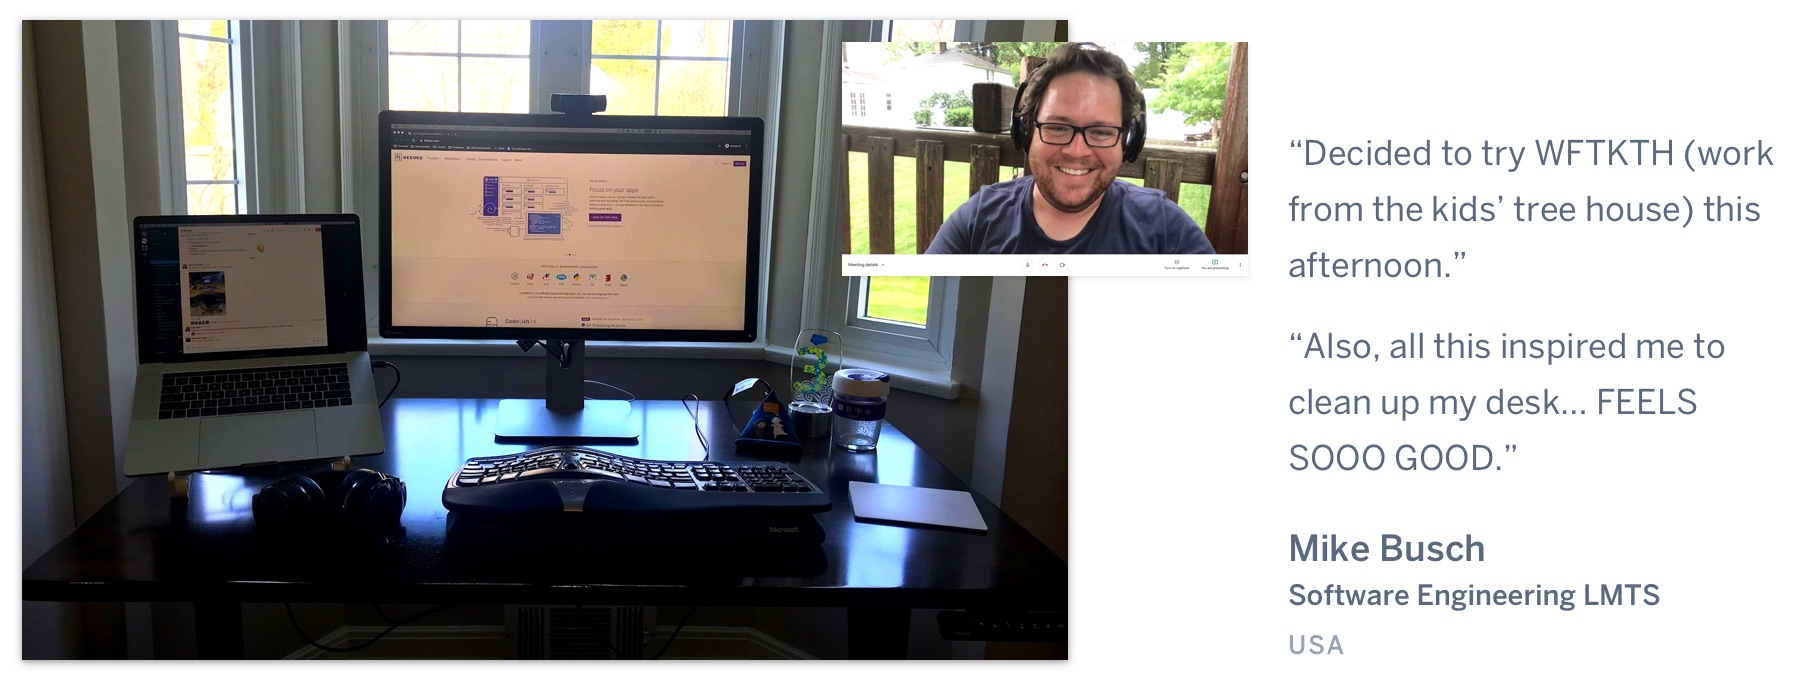 "A computer on a desk in front a window, showing grass outside, and a man on a video call in a treehouse. ""Decided to try WFTKTH (work from the kids' tree house) this afternoon. Also, all this inspired me to clean up my desk… FEELS SOOO GOOD."" Mike Busch, Software Engineering LMTS, USA."